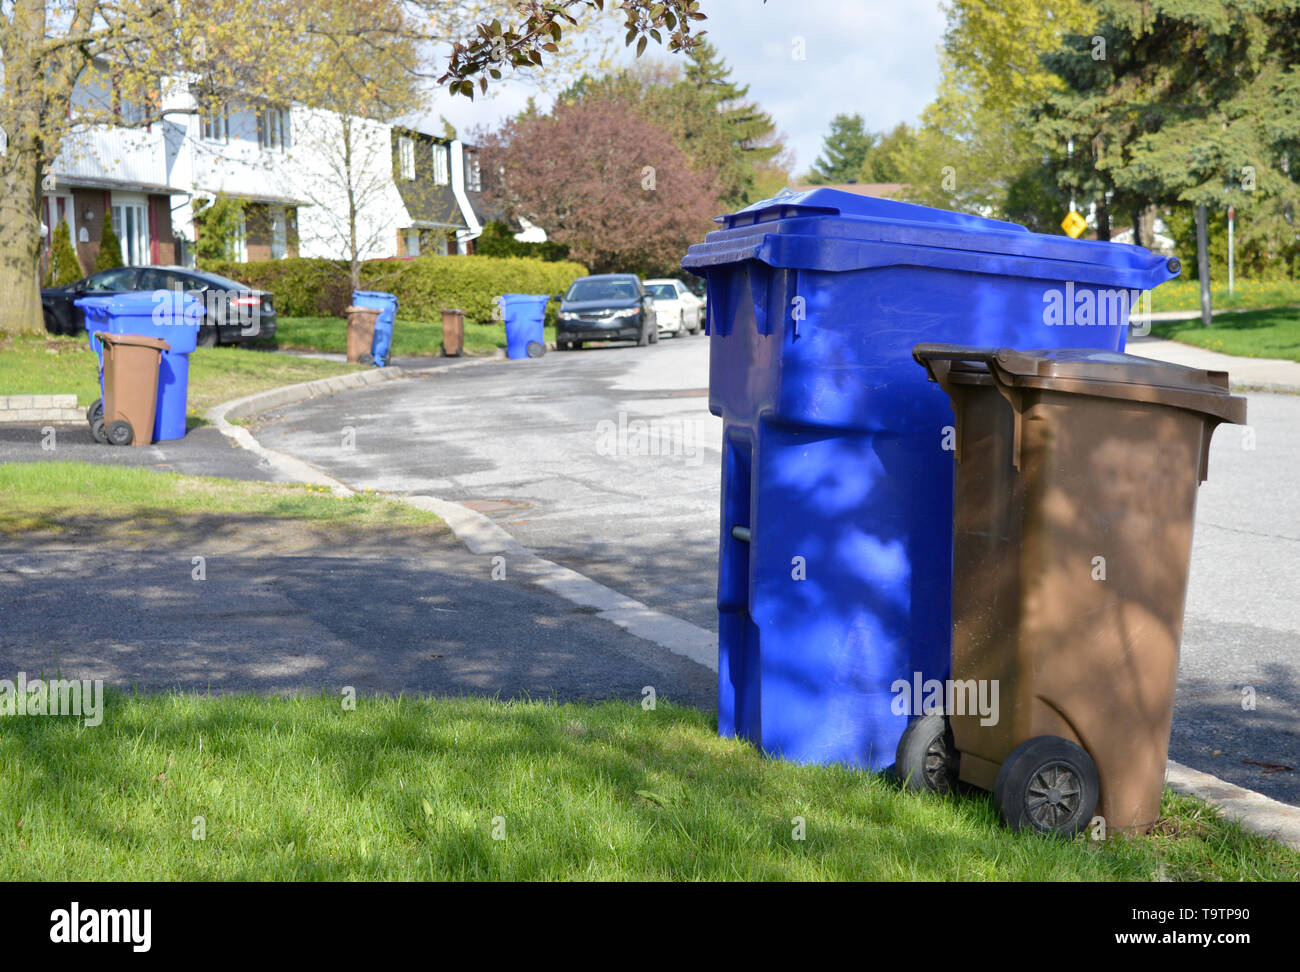 Recycle bins and compost bins line a street awaiting collection from the city - Stock Image